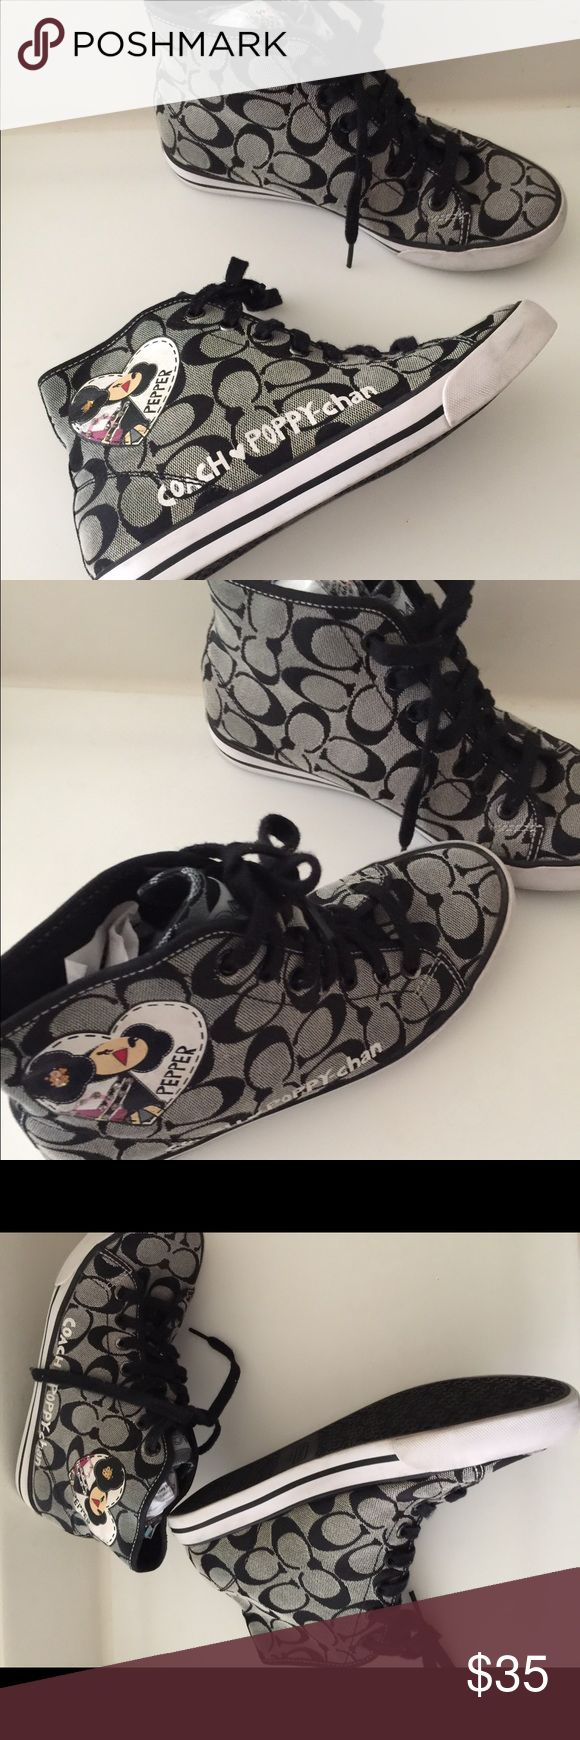 Coach Poppy Chan Pepper High Top Trainers Coach Poppy Chan Pepper high top sneakers in excellent preowned condition. Please take a look at the pictures and ask questions before purchase. Size:7.5  Signature Black greyish. Coach Shoes Sneakers